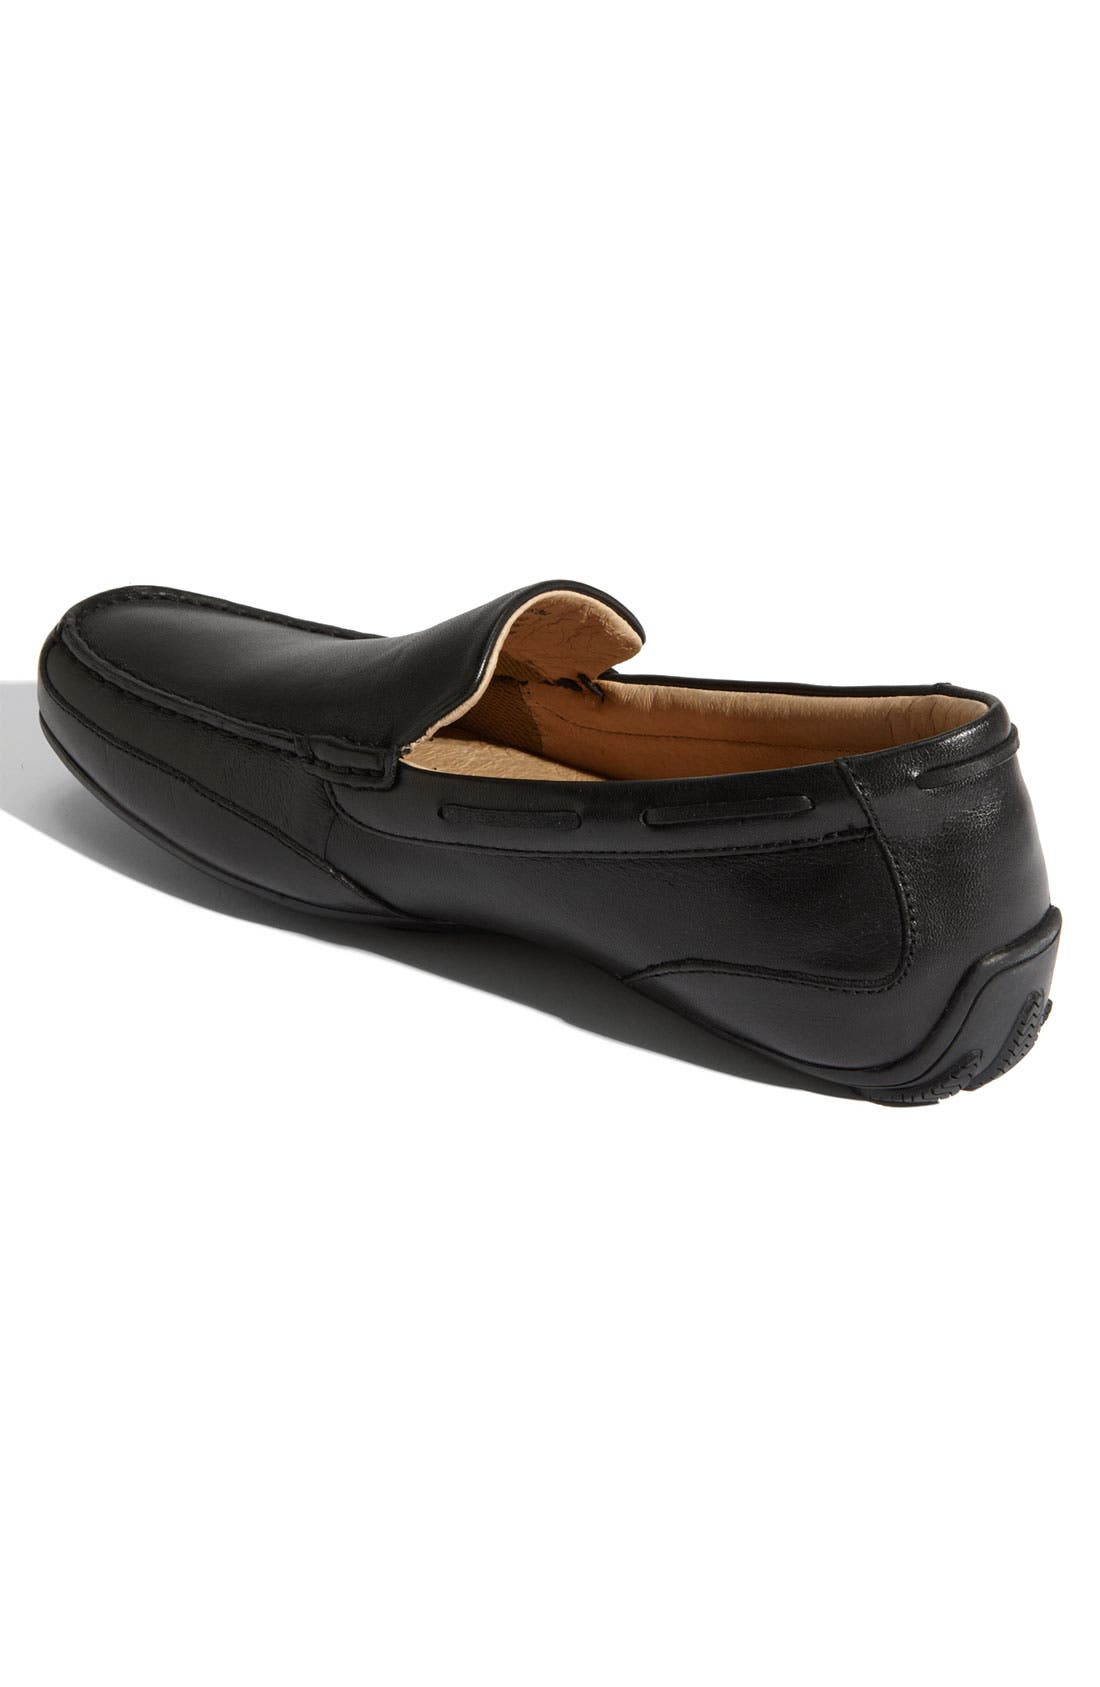 Alternate Image 2  - Sperry Top-Sider® 'Navigator Venetian' Driving Shoe